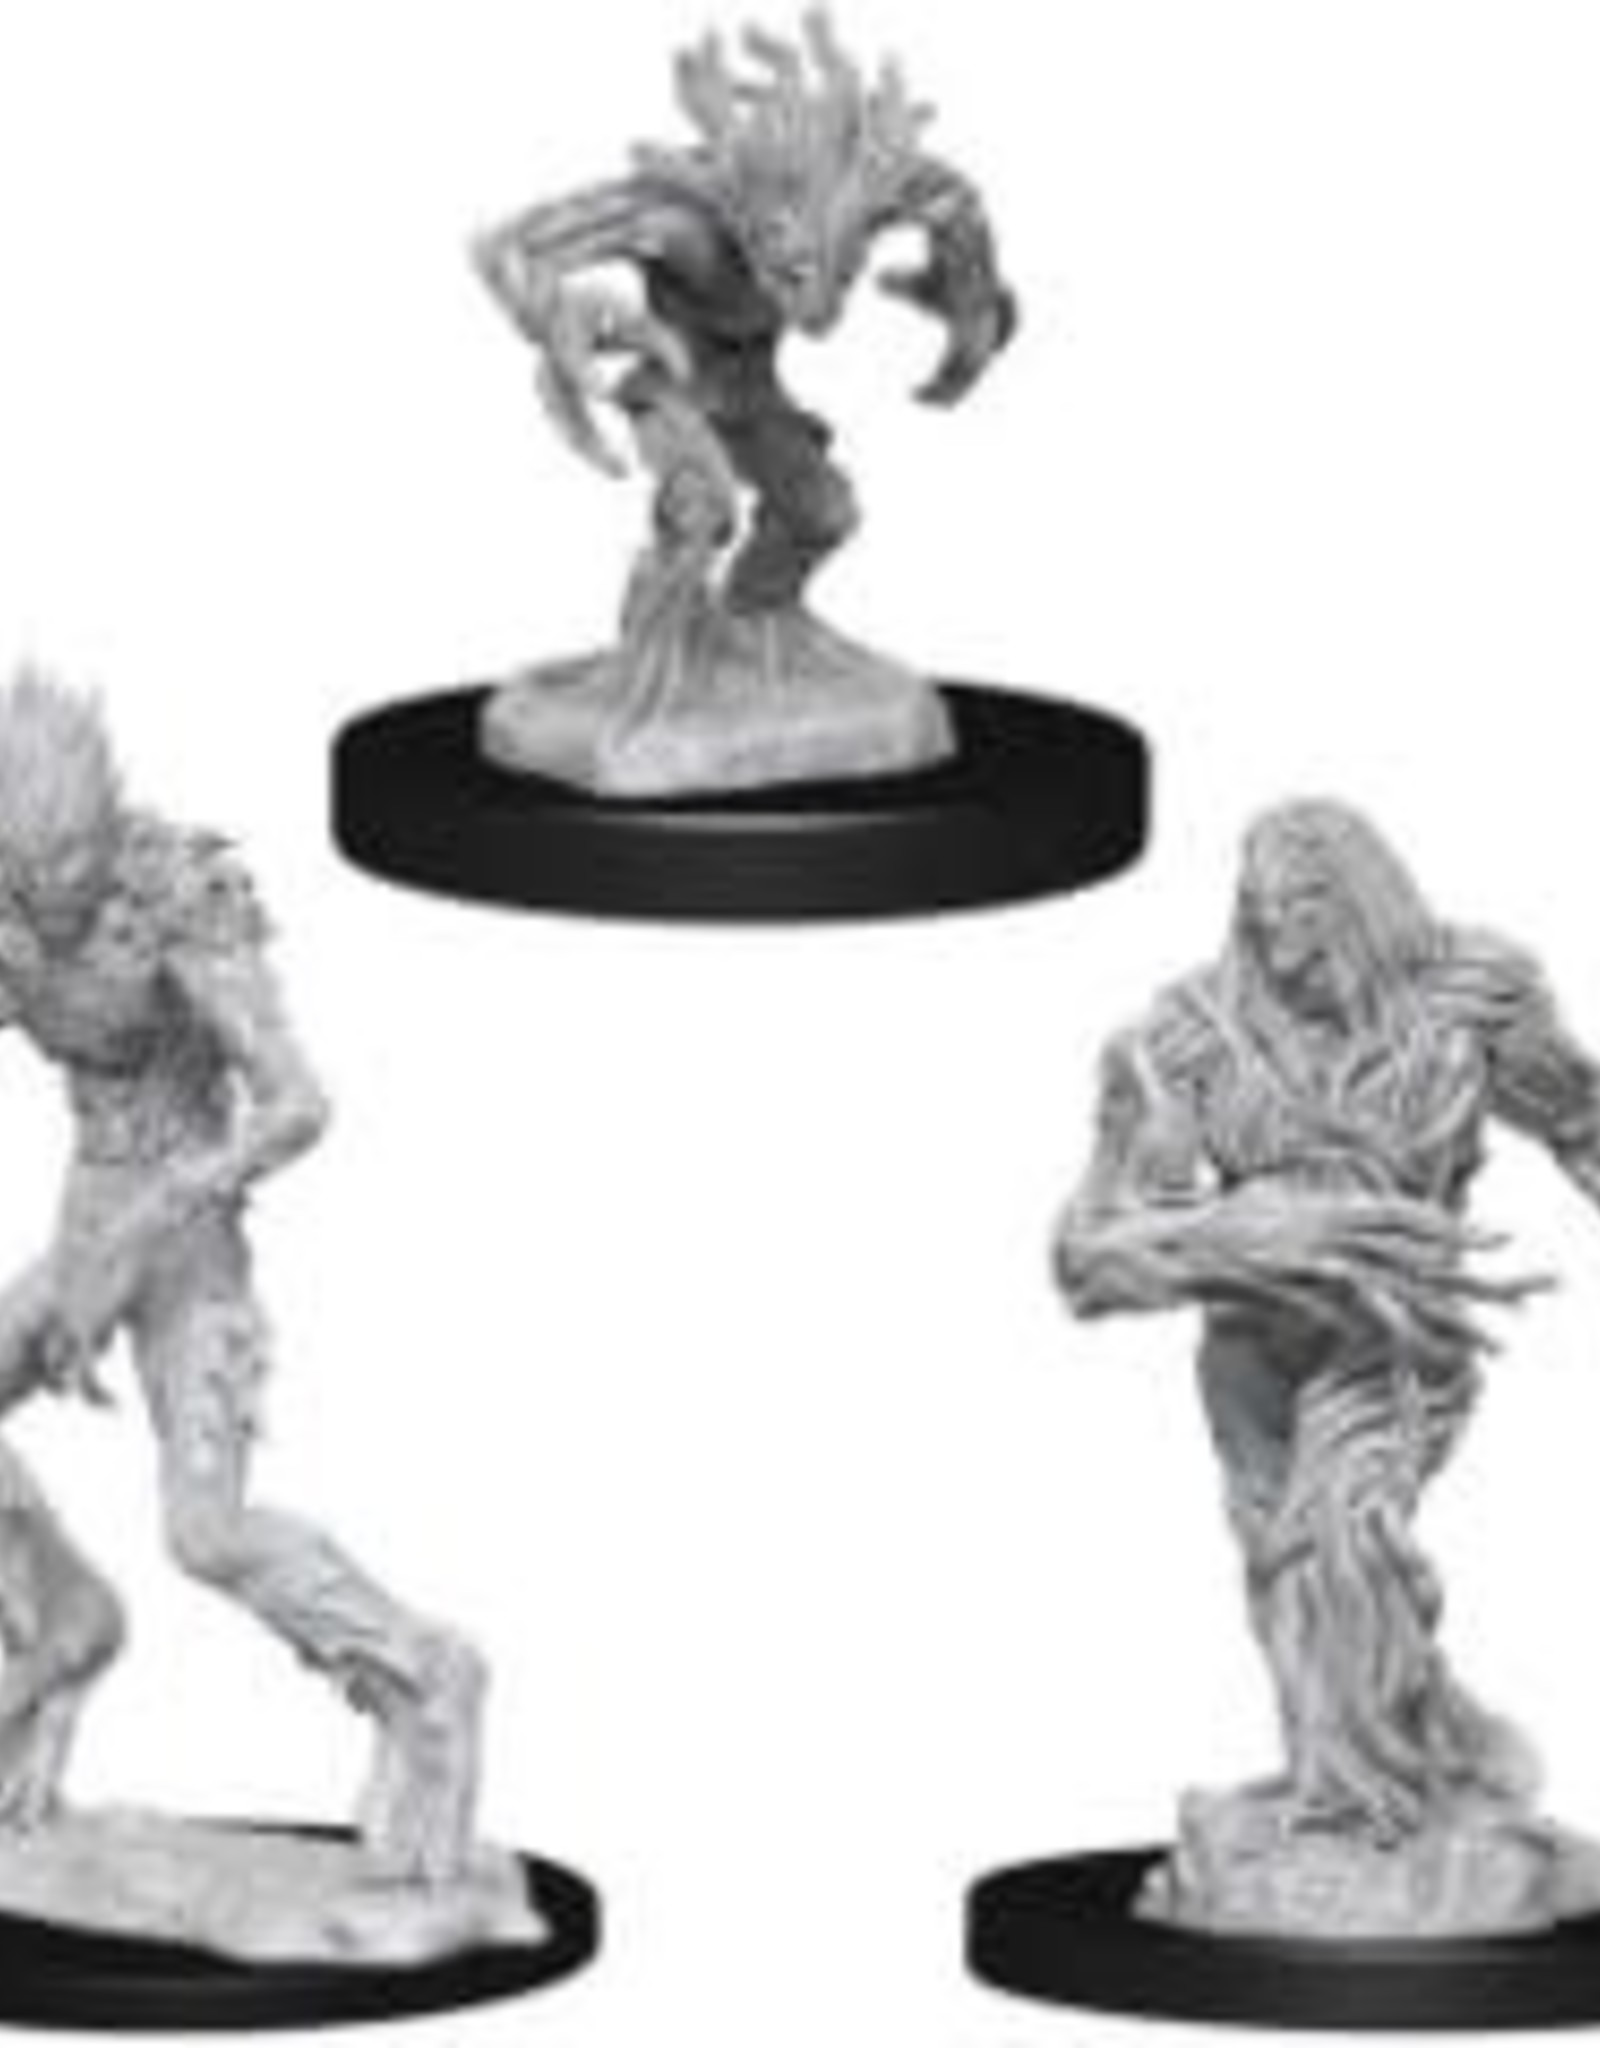 WizKids Dungeons & Dragons Nolzur's Marvelous Miniatures: Blights